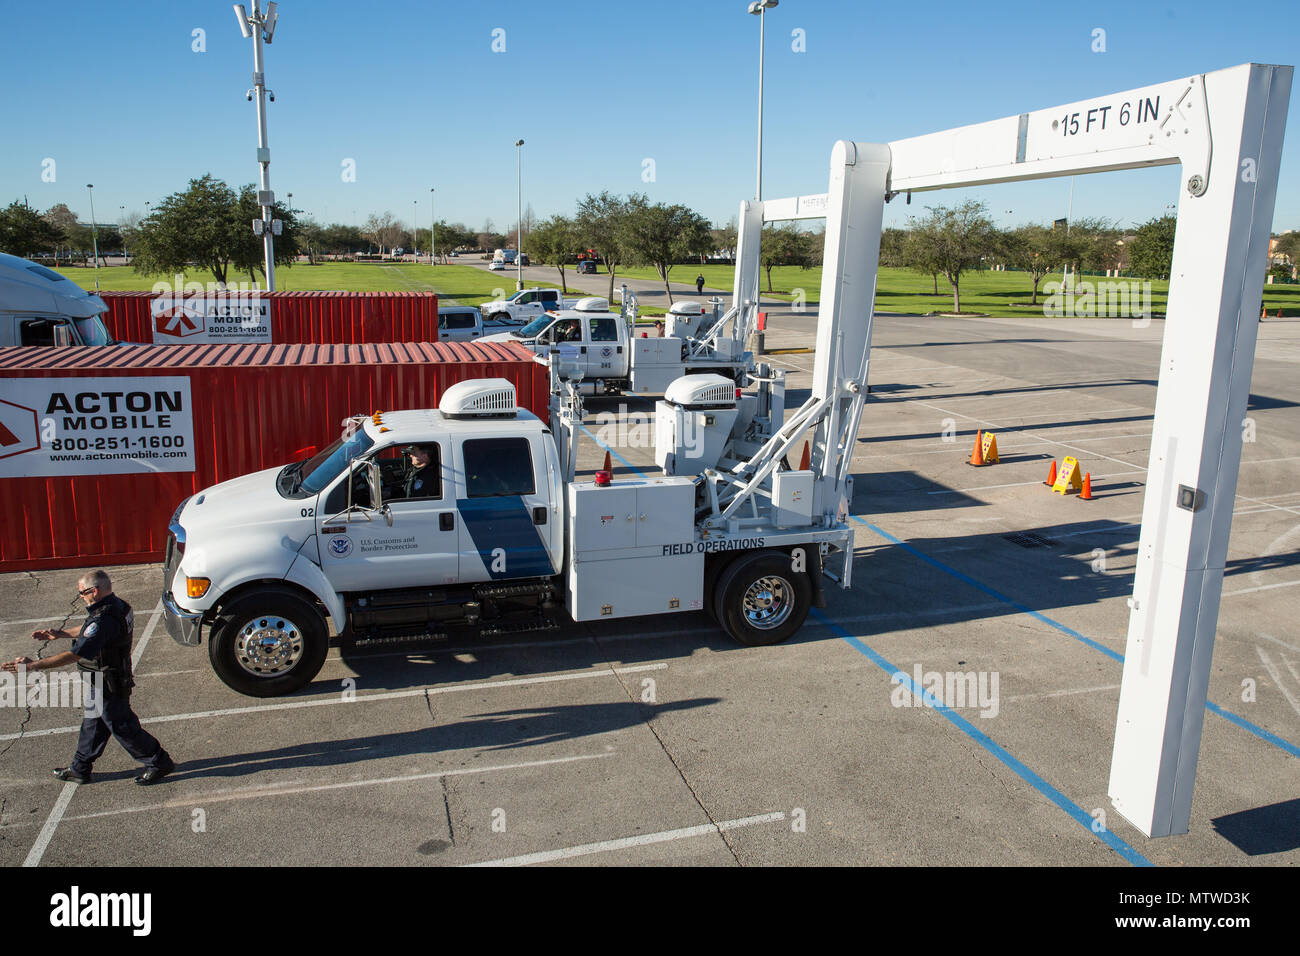 Officers with the U.S. Customs and Border Protection Office of Field Operations conduct inspections of commercial trucks and concession vehicles as they arrive at NRG Stadium in preparation for Super Bowl 51 in Houston, Texas, Jan. 30, 2017. Vehicles are scanned by x-ray prior to entry into the main stadium facilities. U.S. Customs and Border Protection Photo by Ozzy Trevino Stock Photo